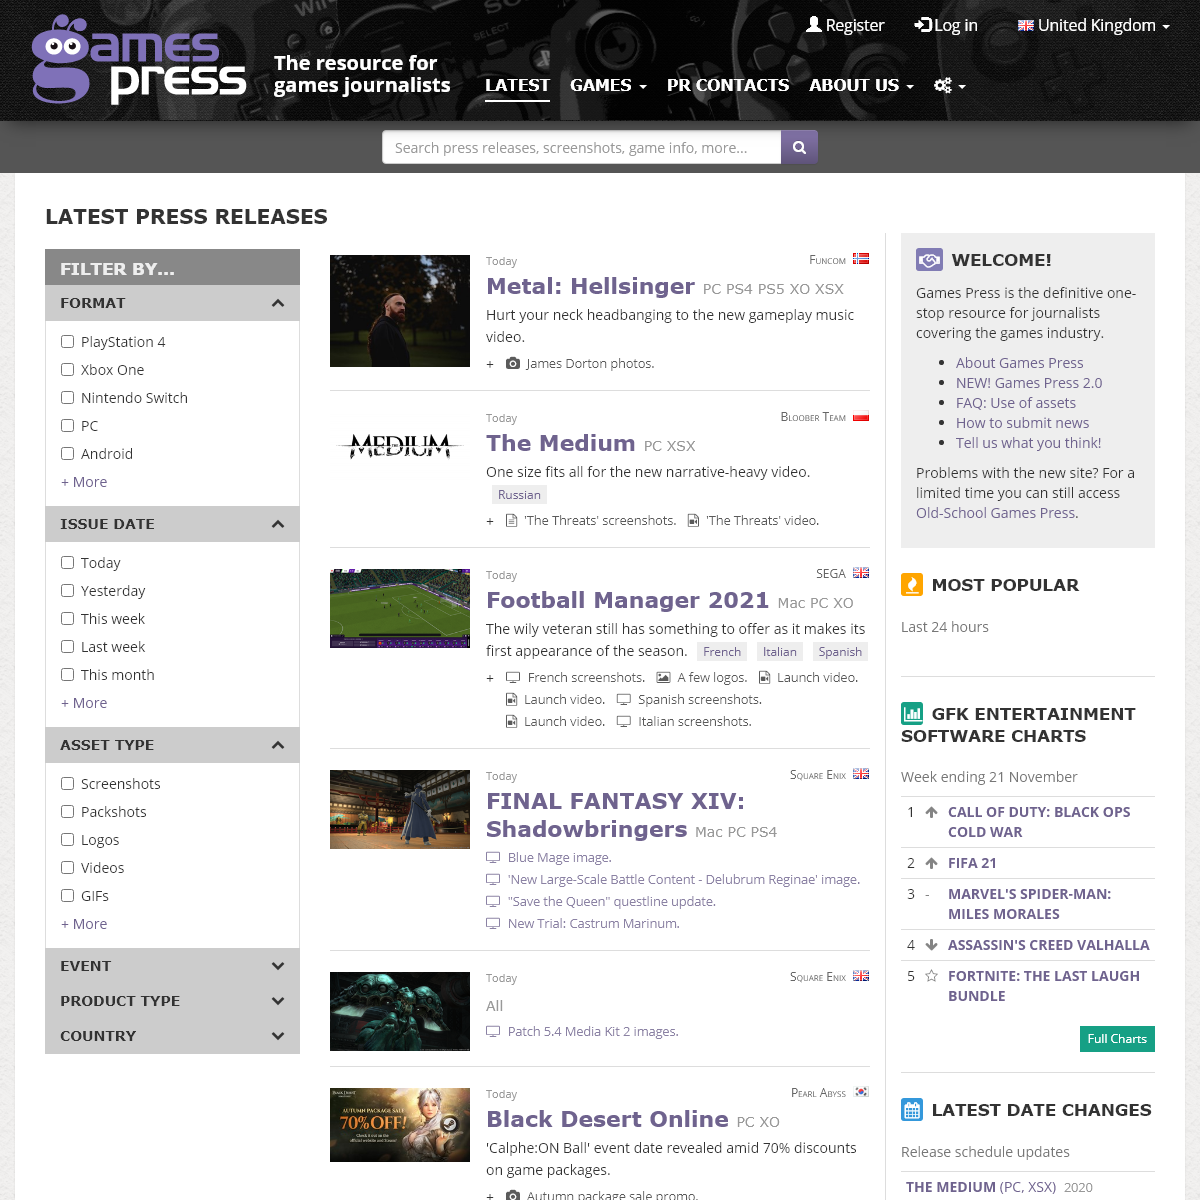 Games Press- The resource for games journalists